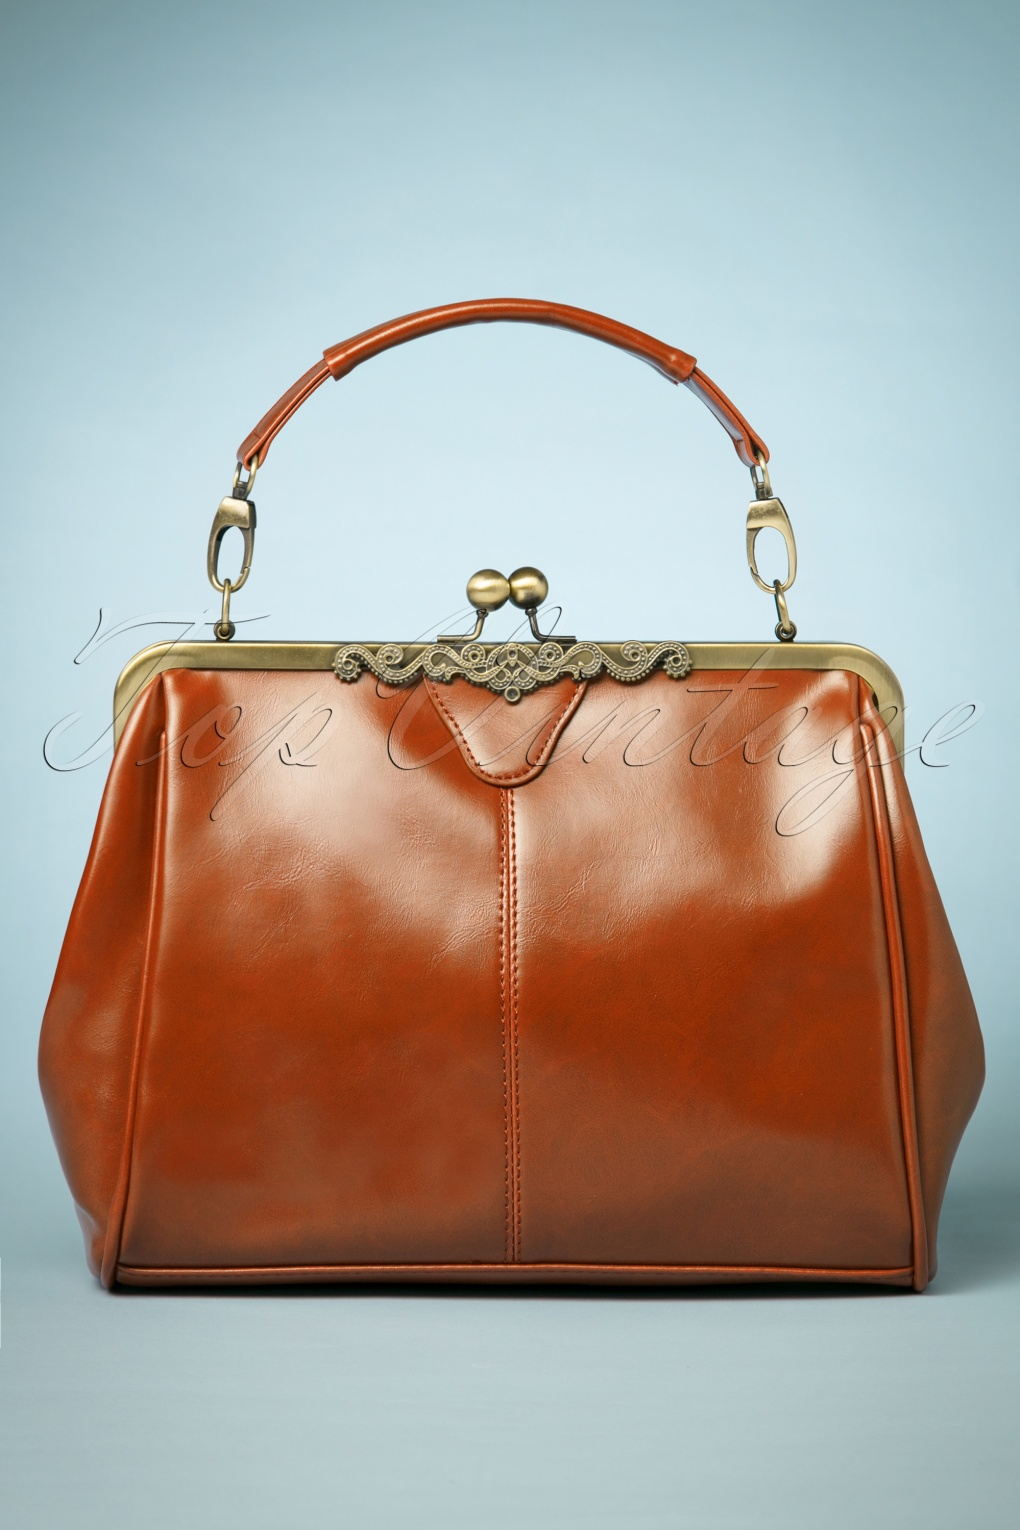 Vintage & Retro Handbags, Purses, Wallets, Bags 20s Vintage Frame Kisslock Clasp Bag in Cognac £35.48 AT vintagedancer.com